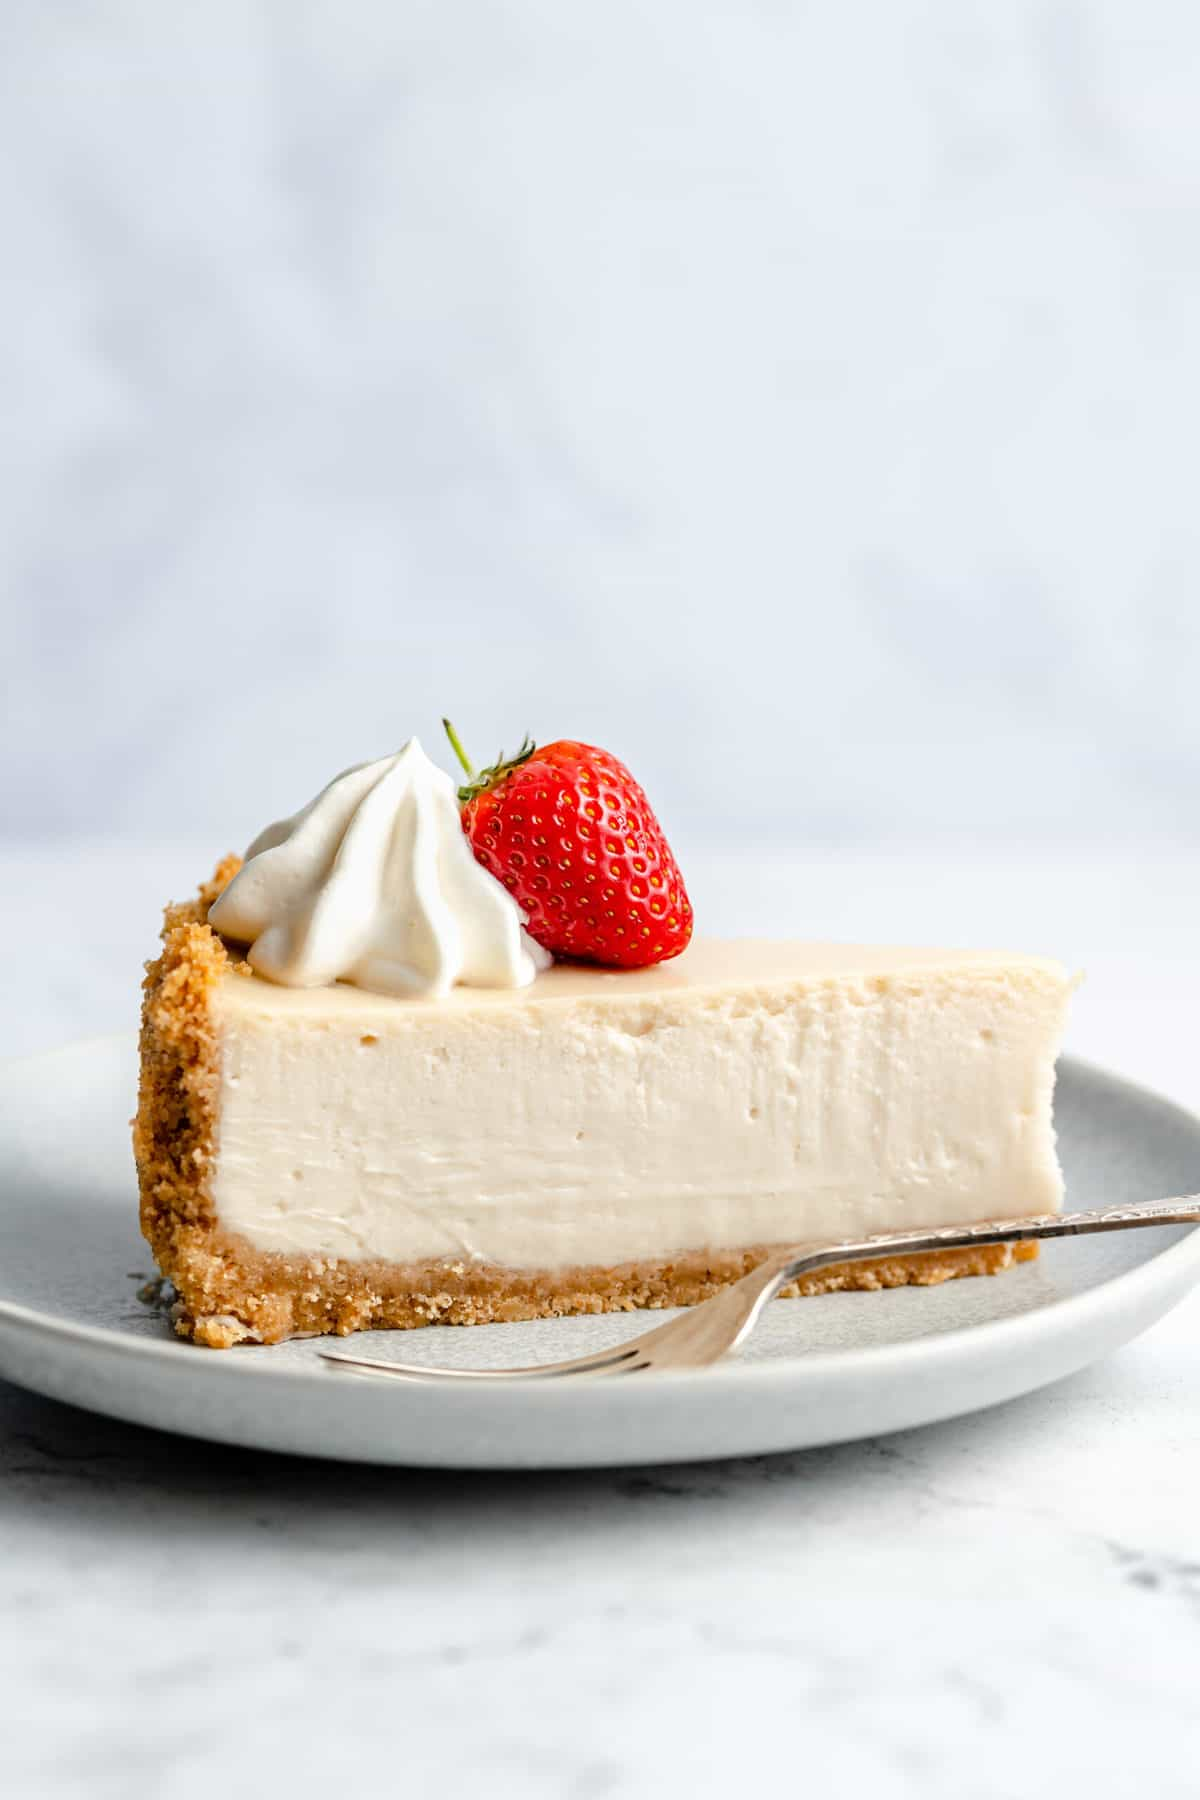 Slice of vanilla cheesecake with a strawberry.